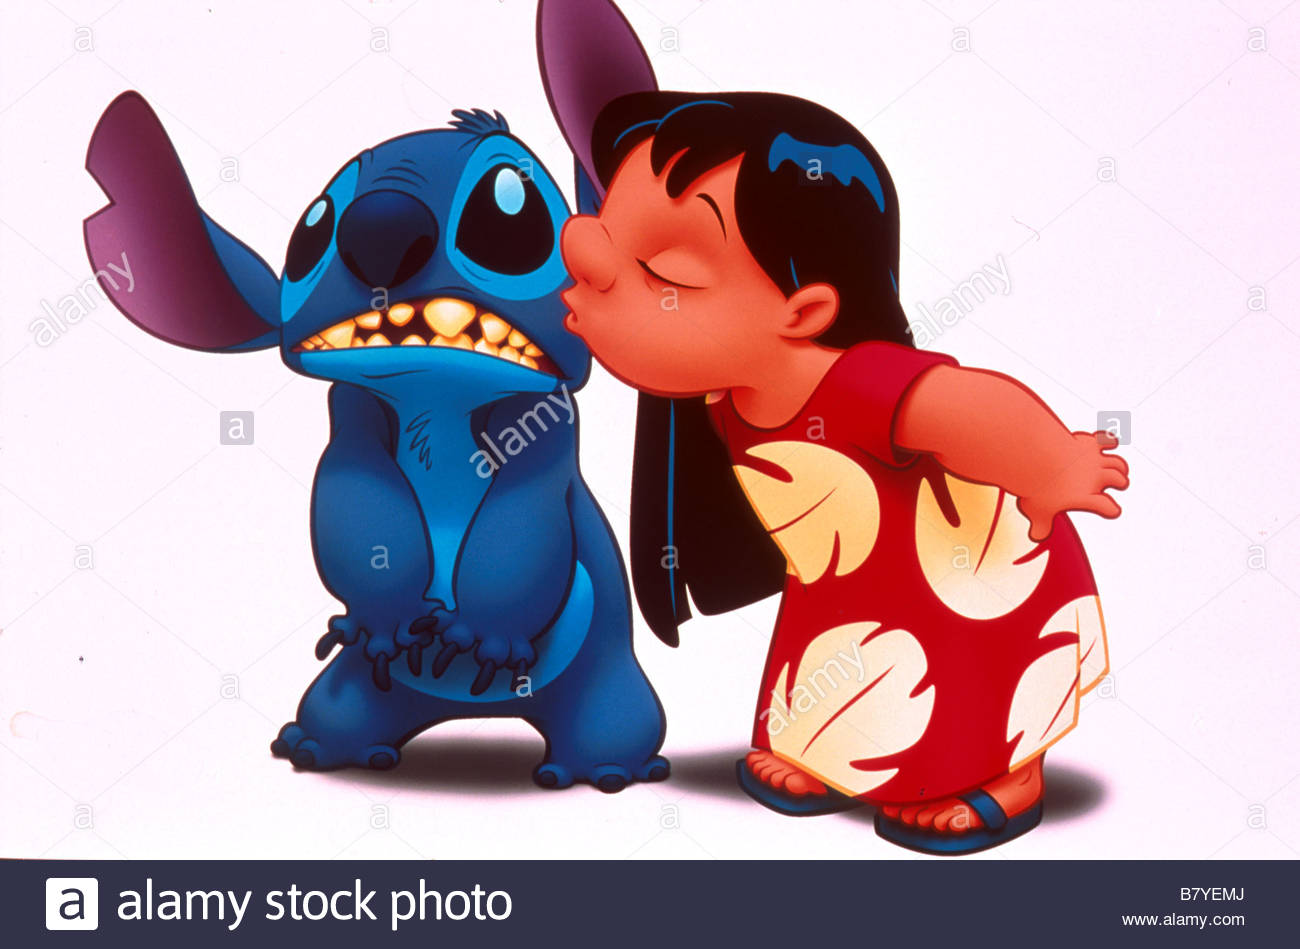 Animated Happy Birthday Wallpaper Free Download Lilo Et Stitch Lilo Stitch Lilo And Stitch Ann 233 E 2002 Usa